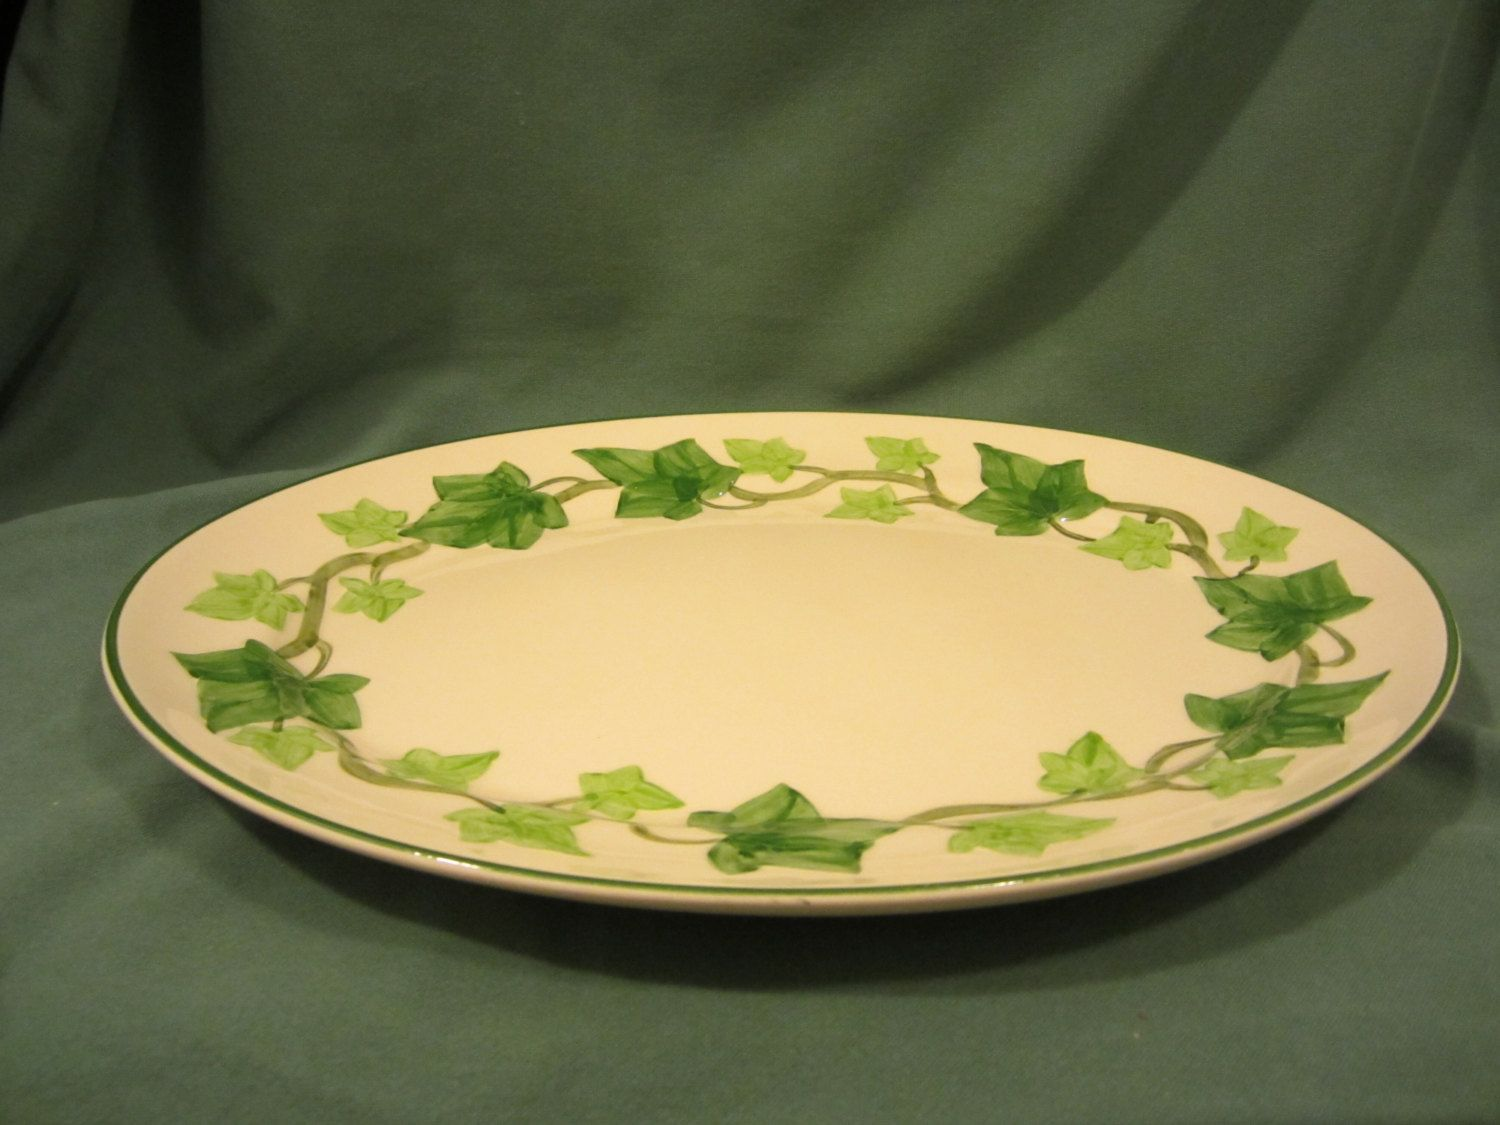 Vintage Franciscan Ware Ivy Pattern, Dinner Plate, This is The Same China  Pattern As Seen In